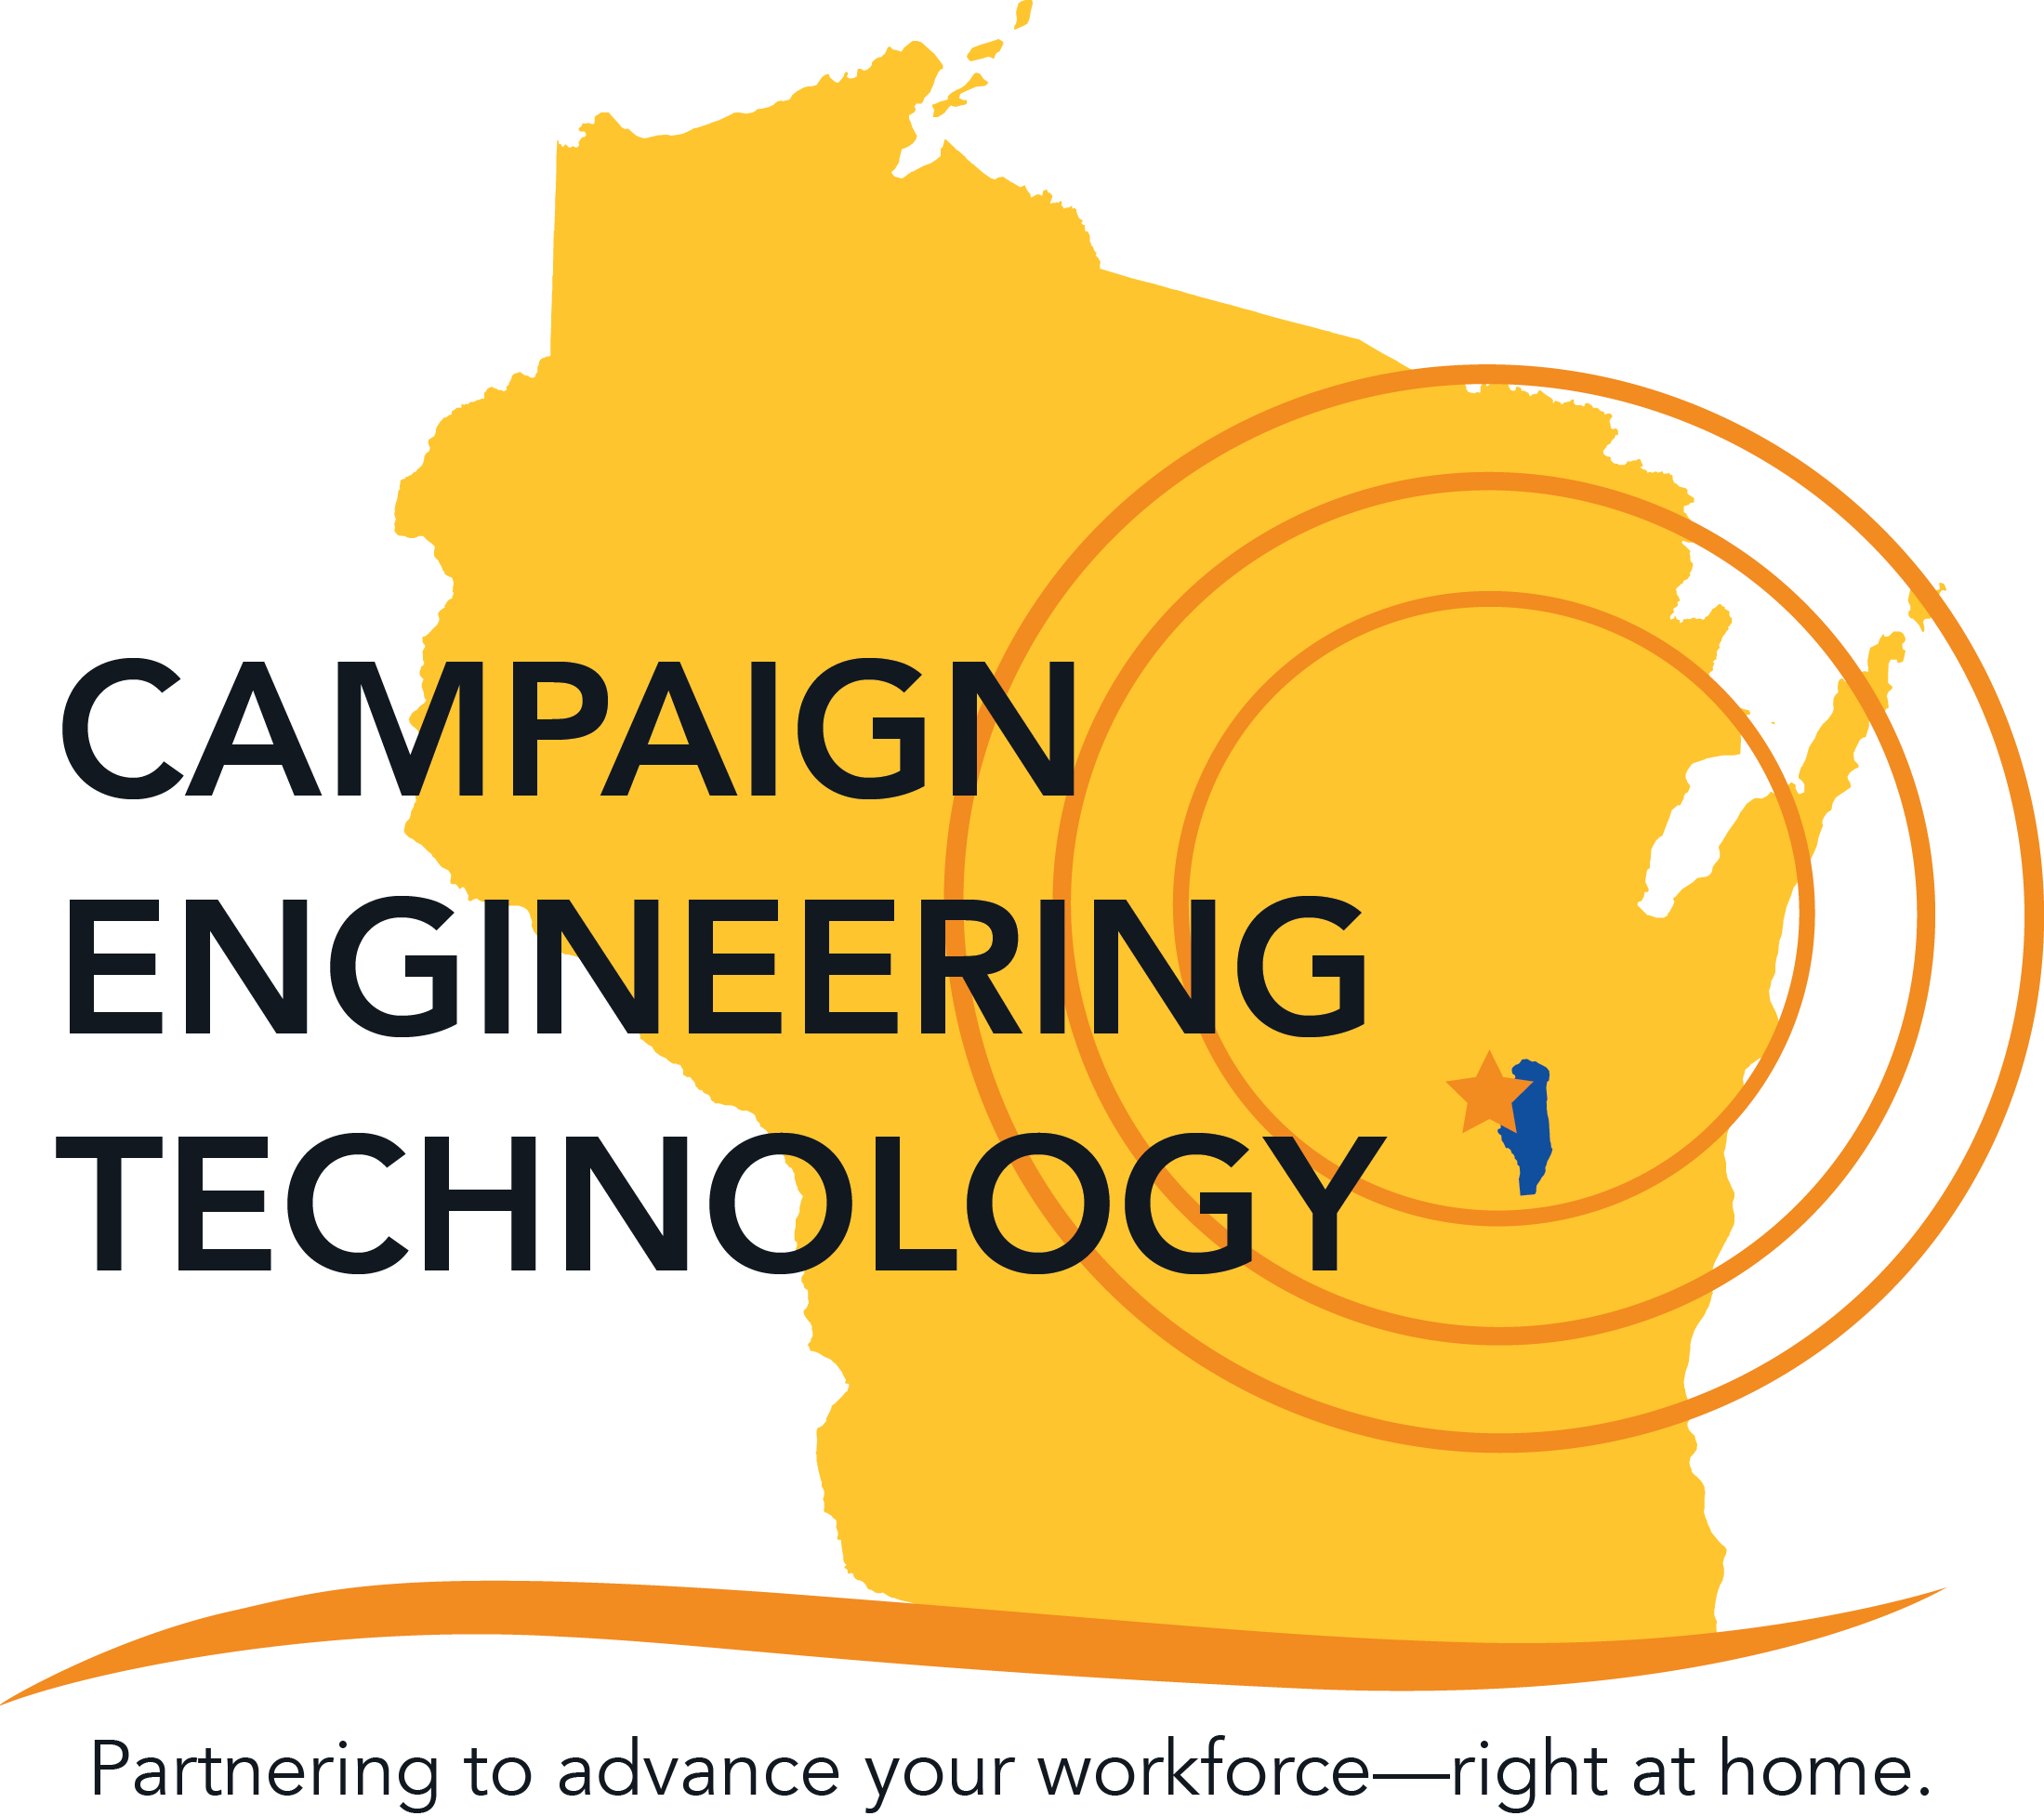 Campaign Engineering Technology Logo